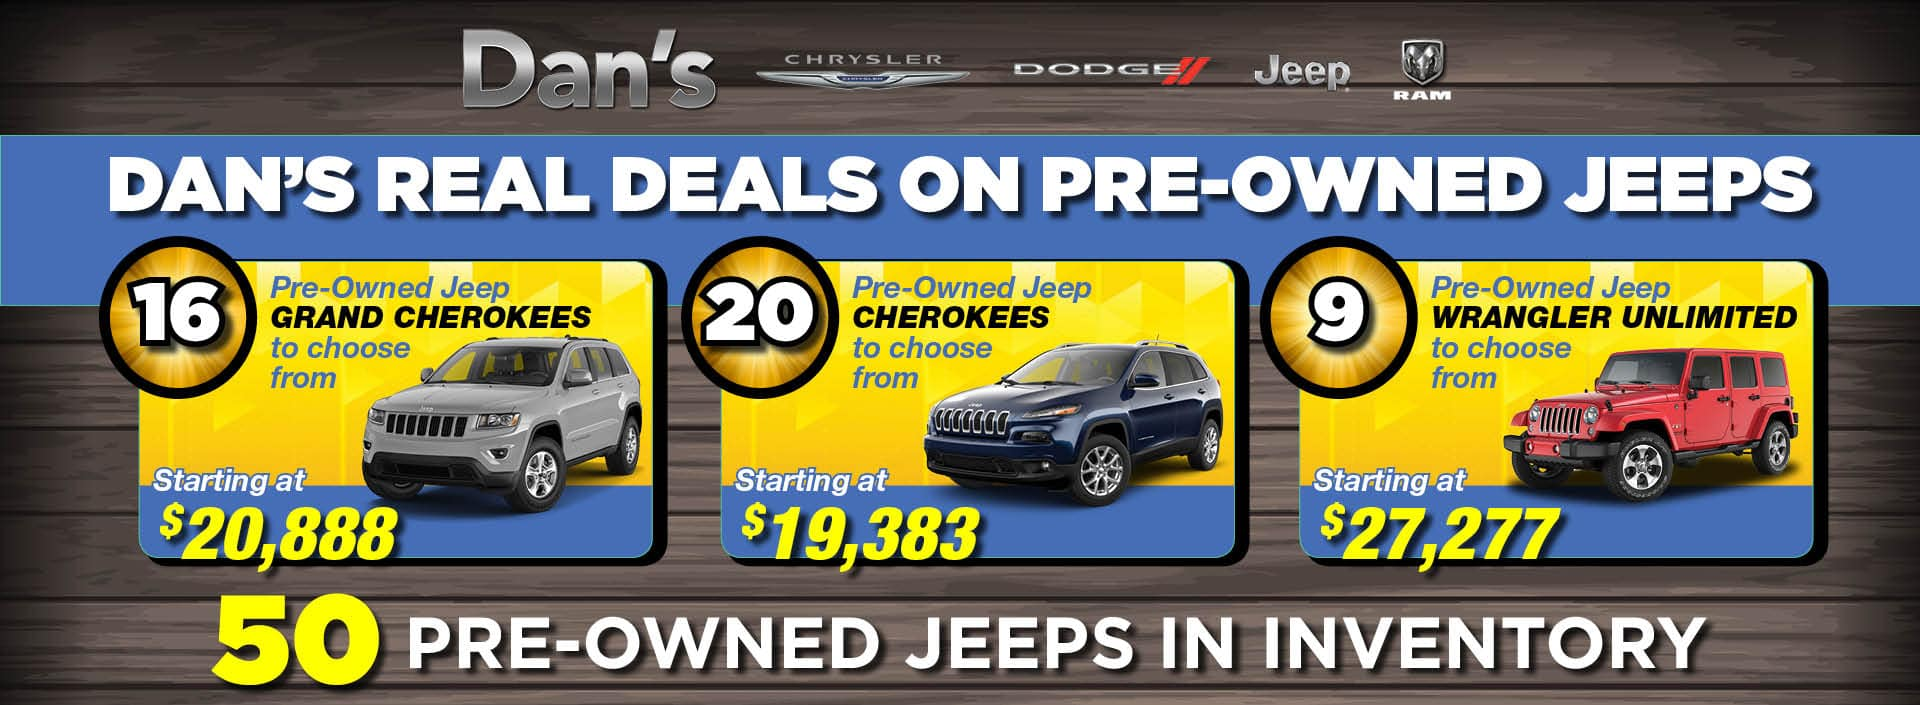 Pre-owned Jeeps